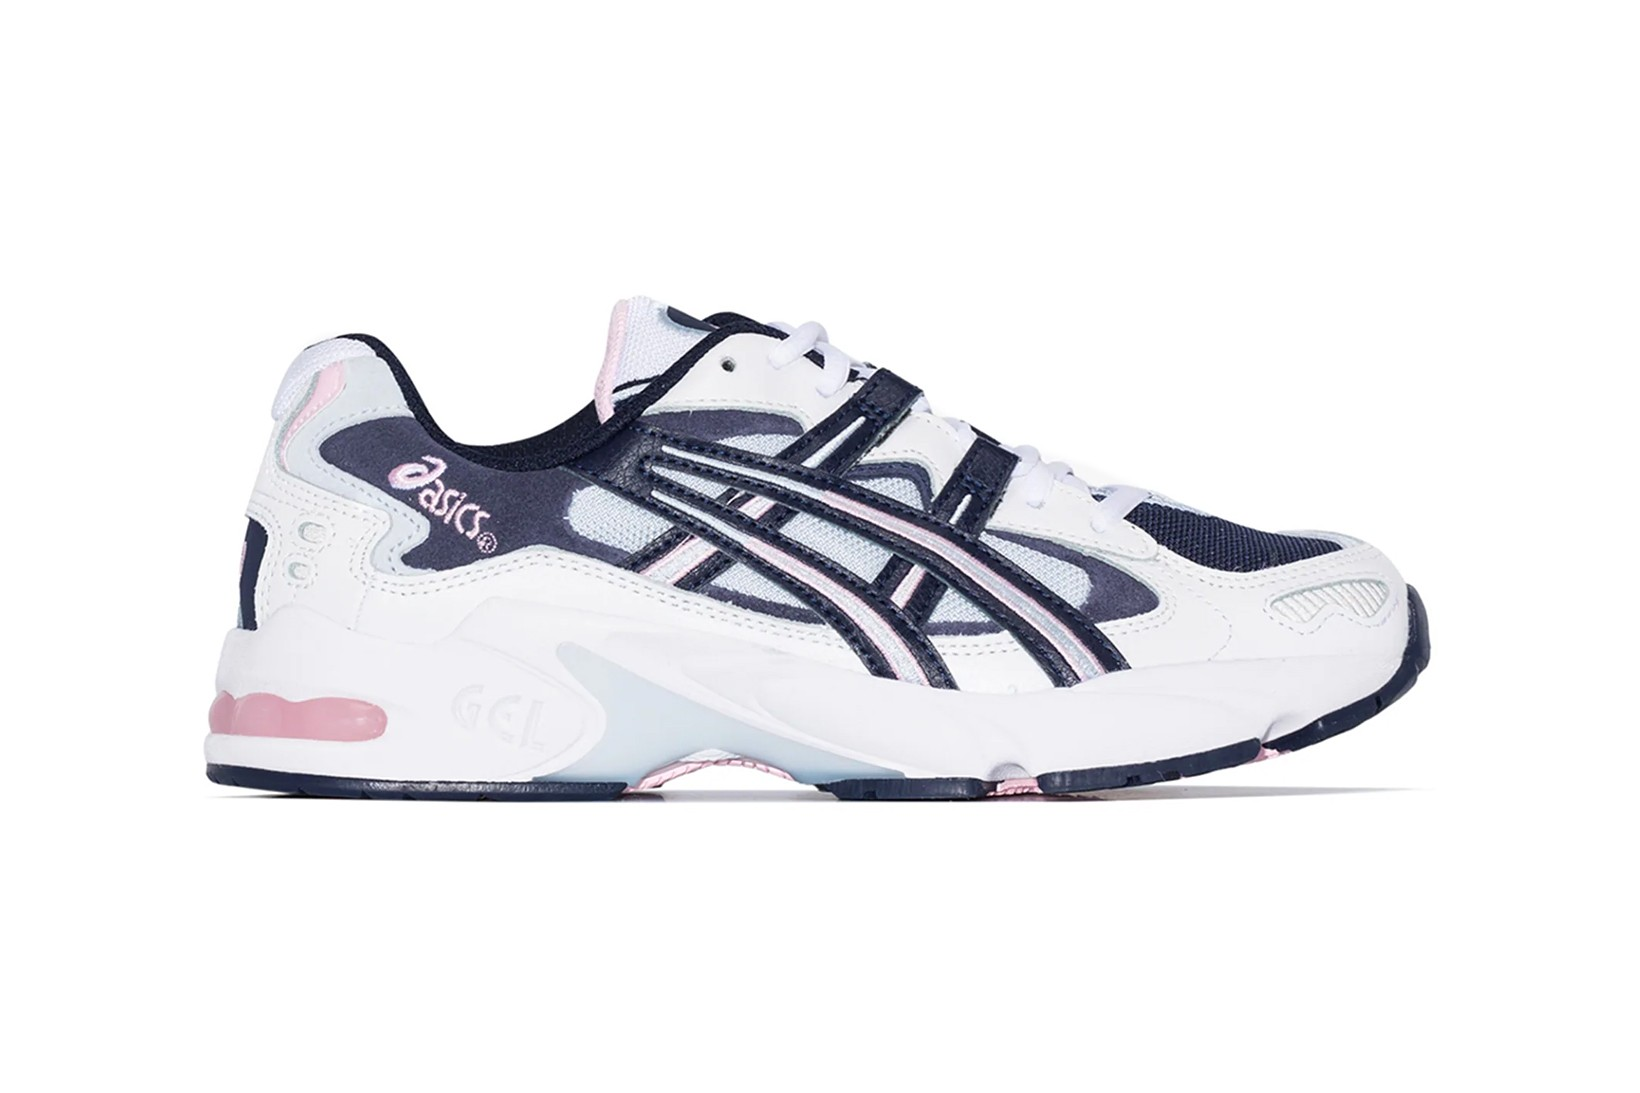 ASICS Gel-Kayano 5 in Blue and Pink for